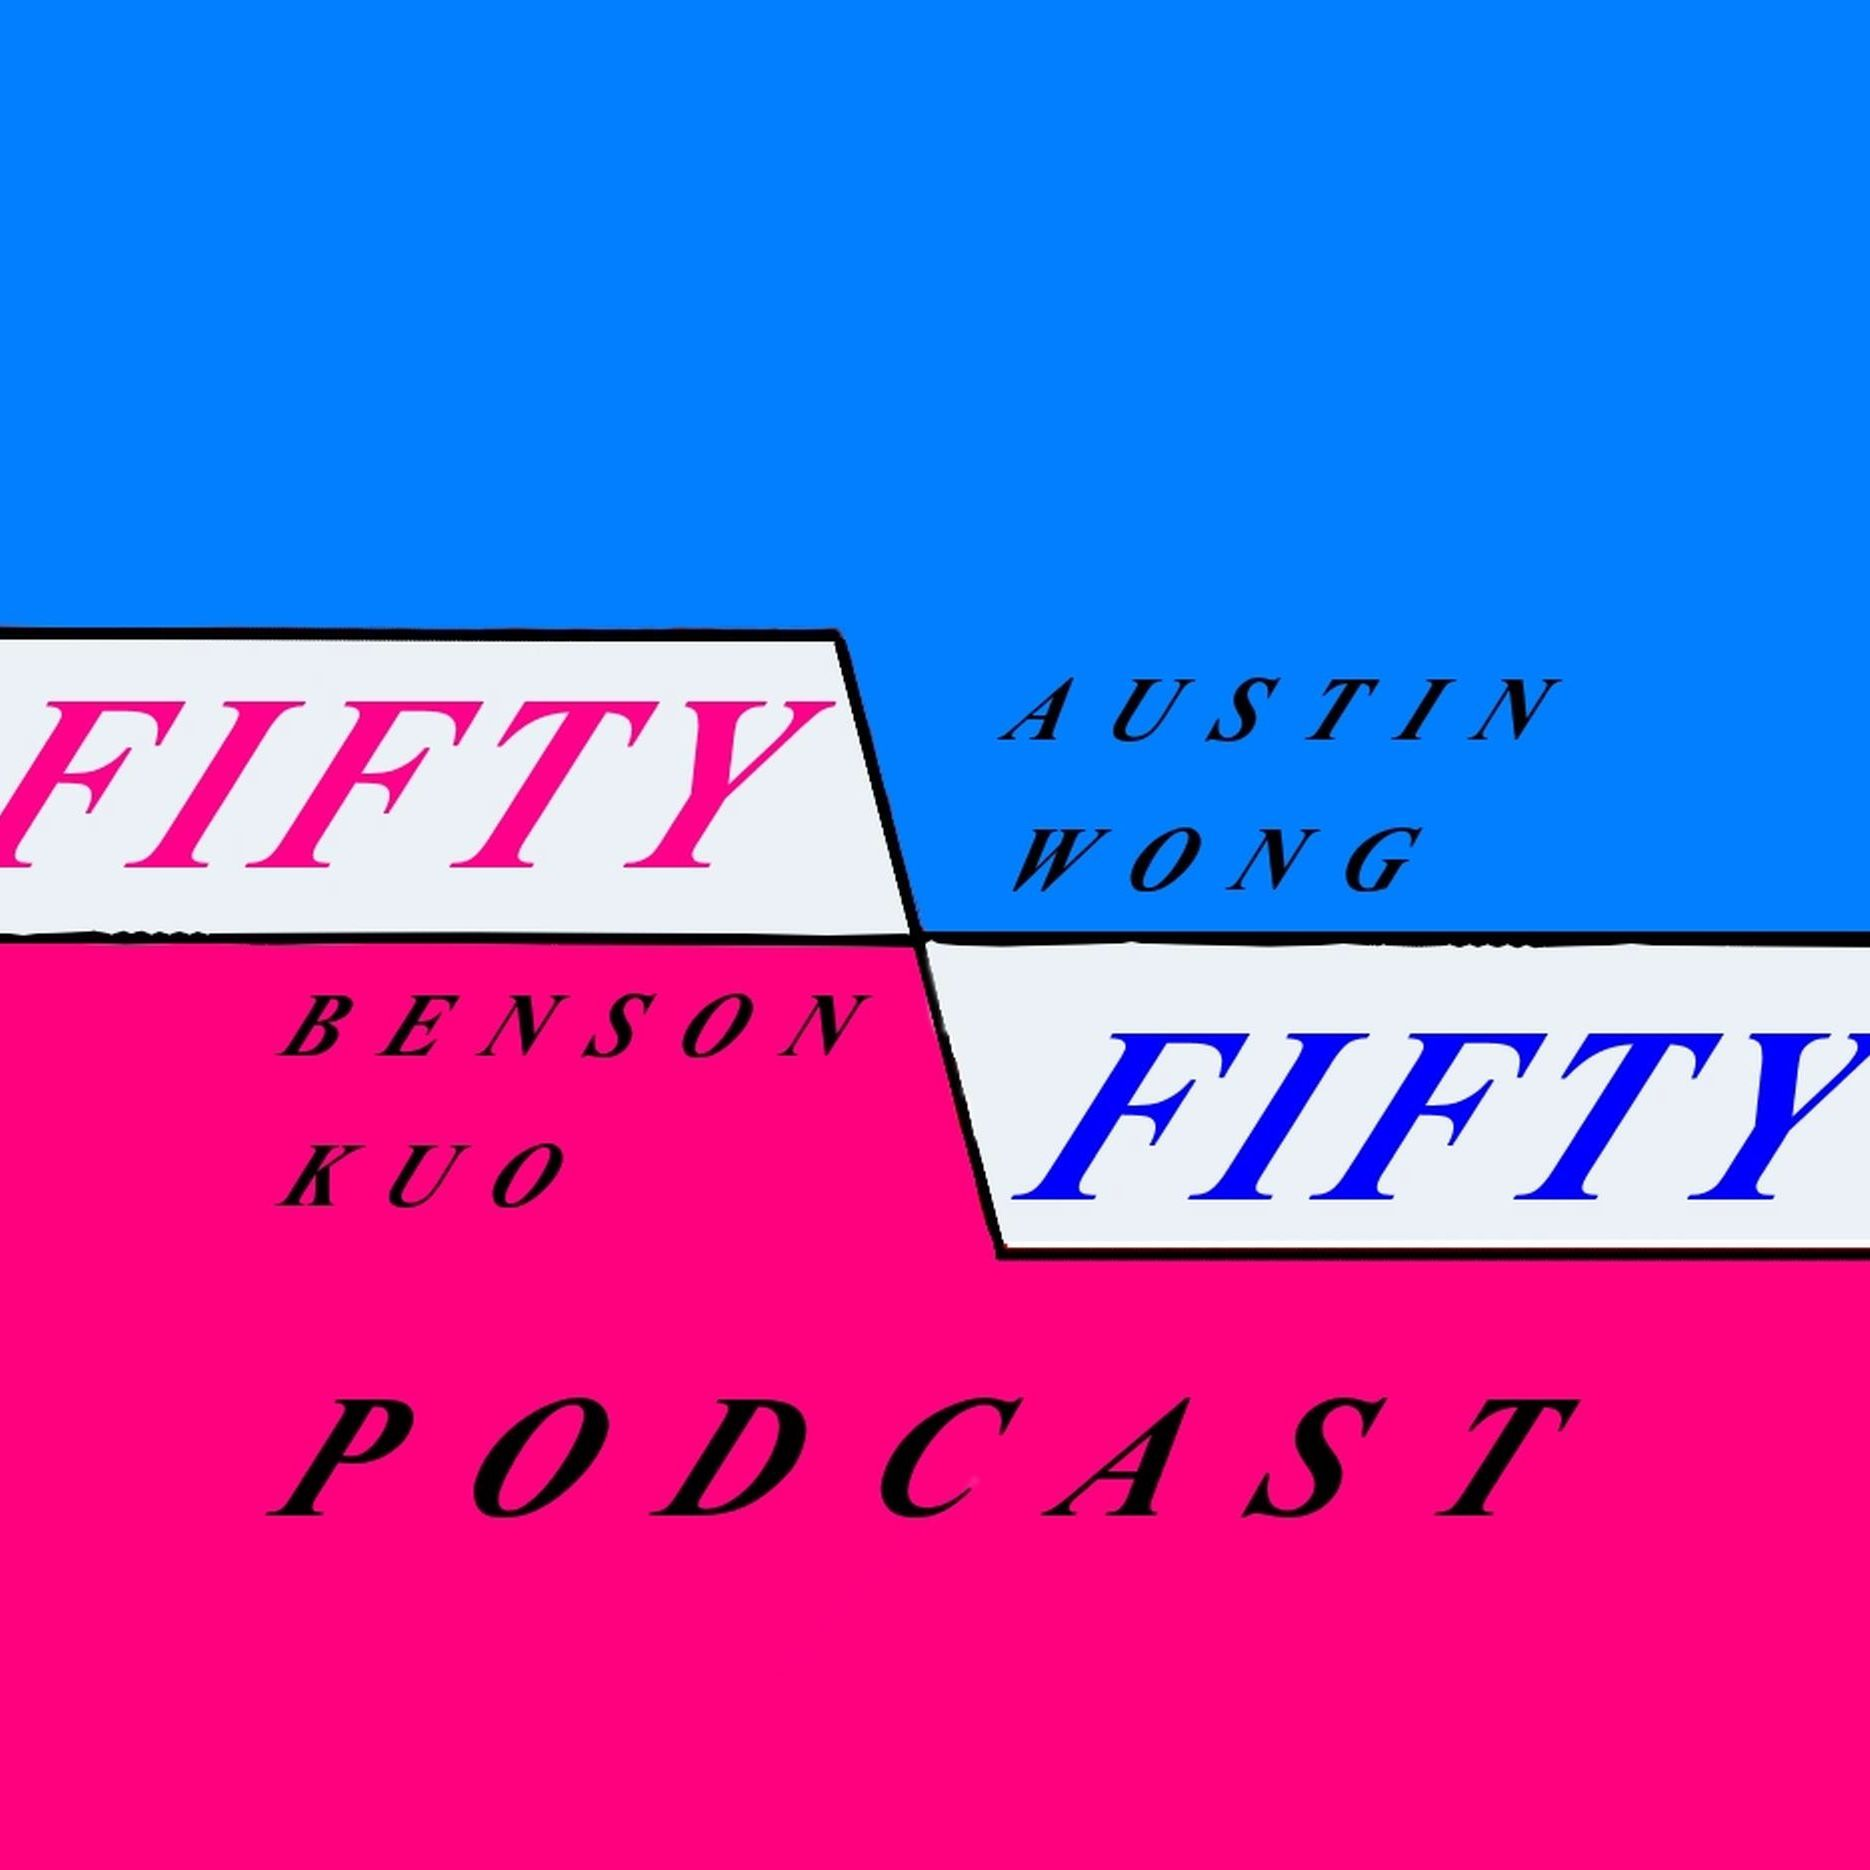 FiftyFifty Ep. 3 Fools//Pet Peeves